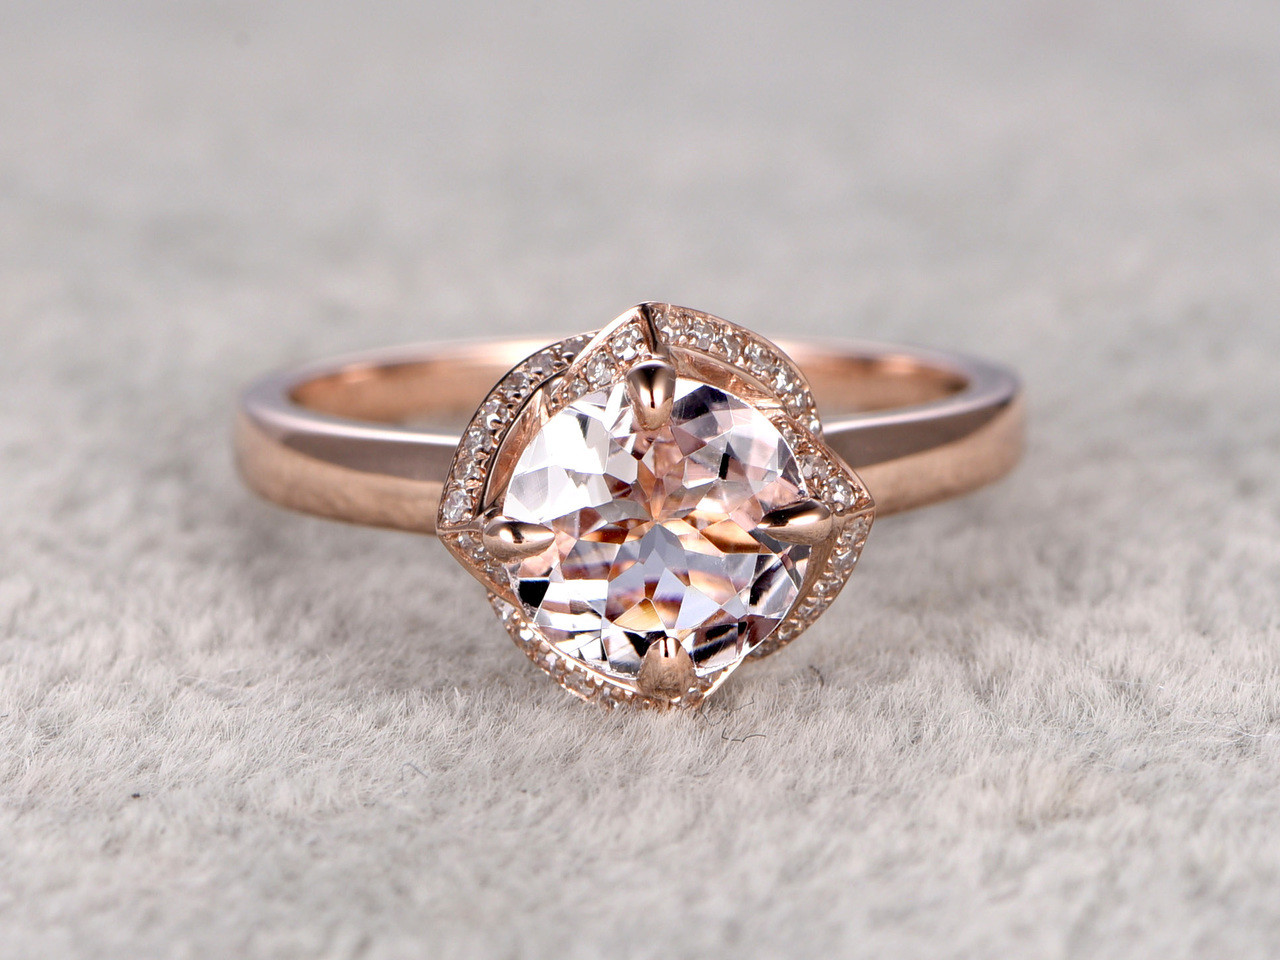 65mm Round Morganite Engagement Ring Diamond Wedding 14k Rose Gold Claw Prongs Floral